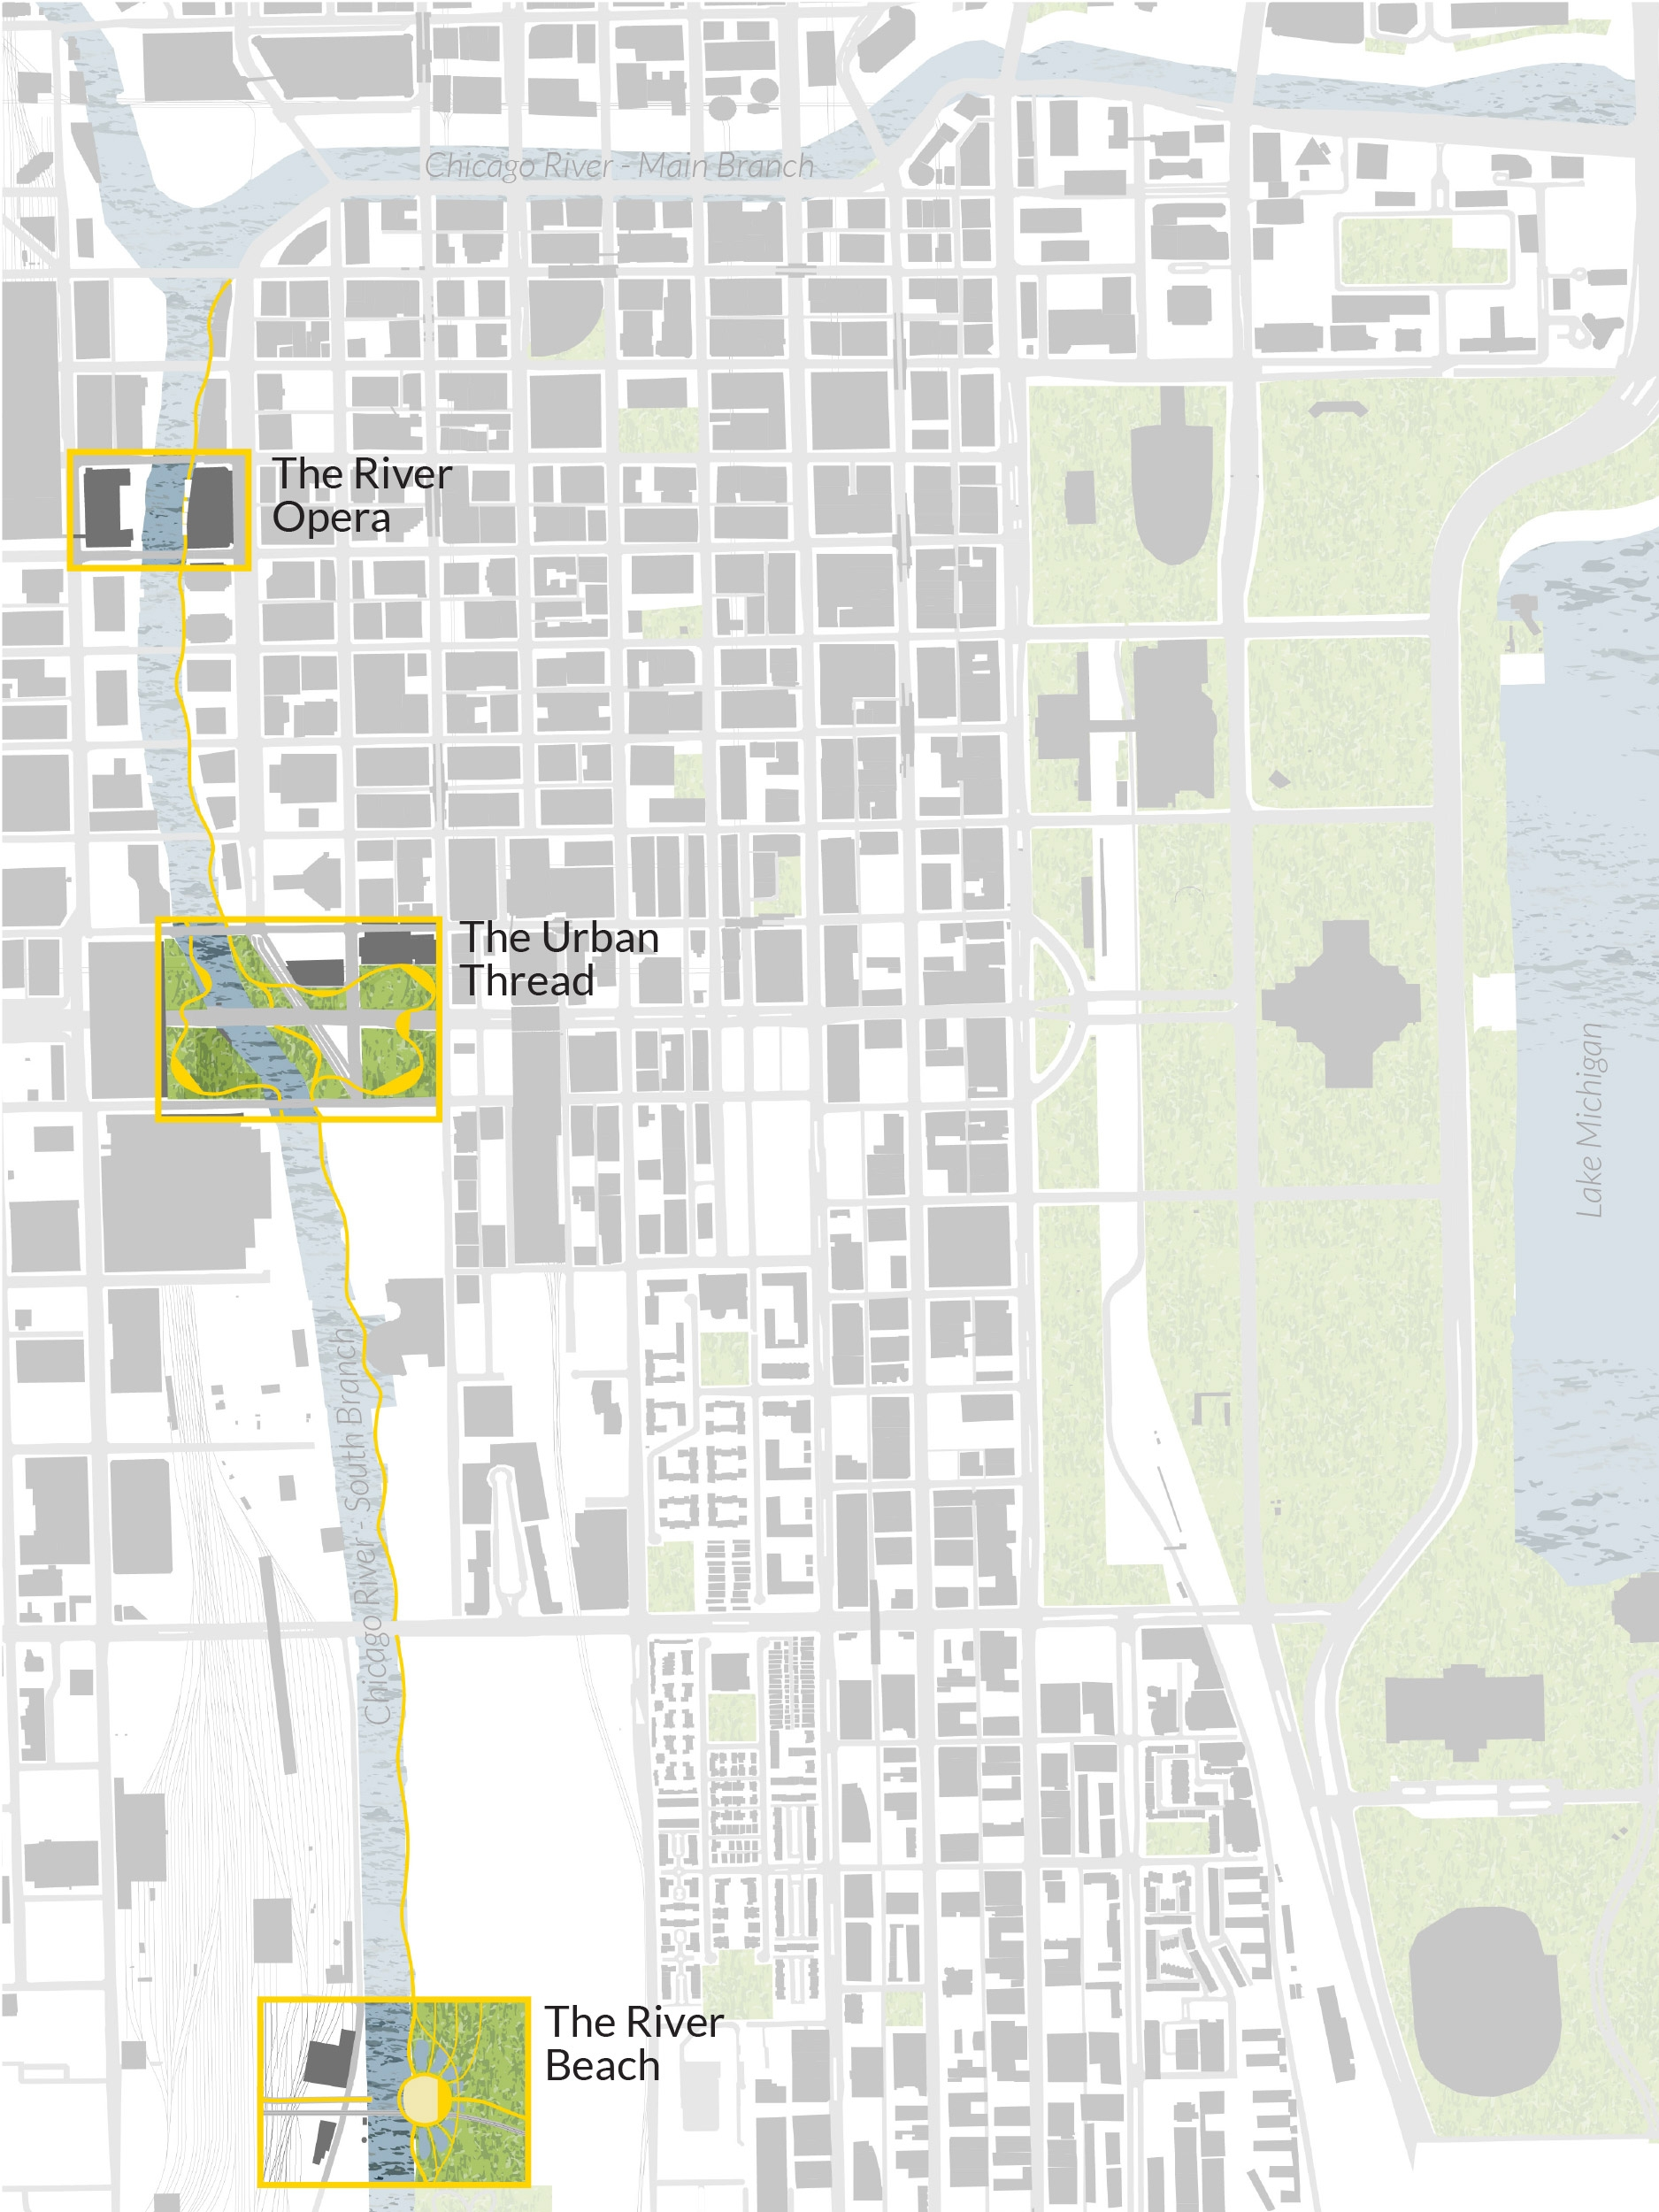 Third Nature: A Strategy for the Chicago Riverwalk